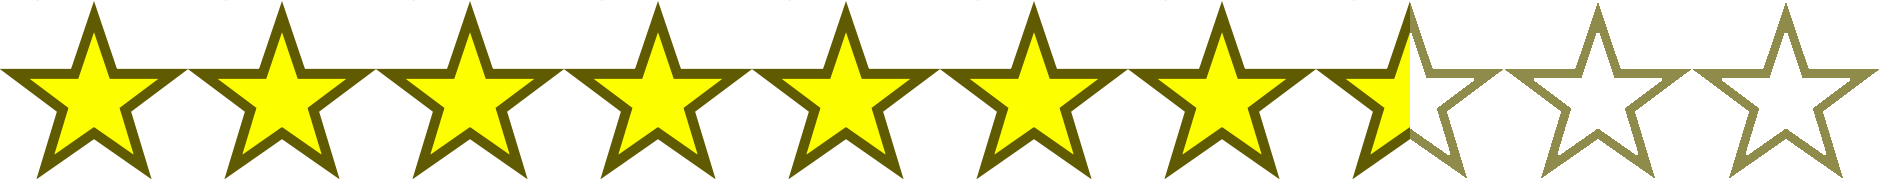 Image result for 7.5 out of 10 stars